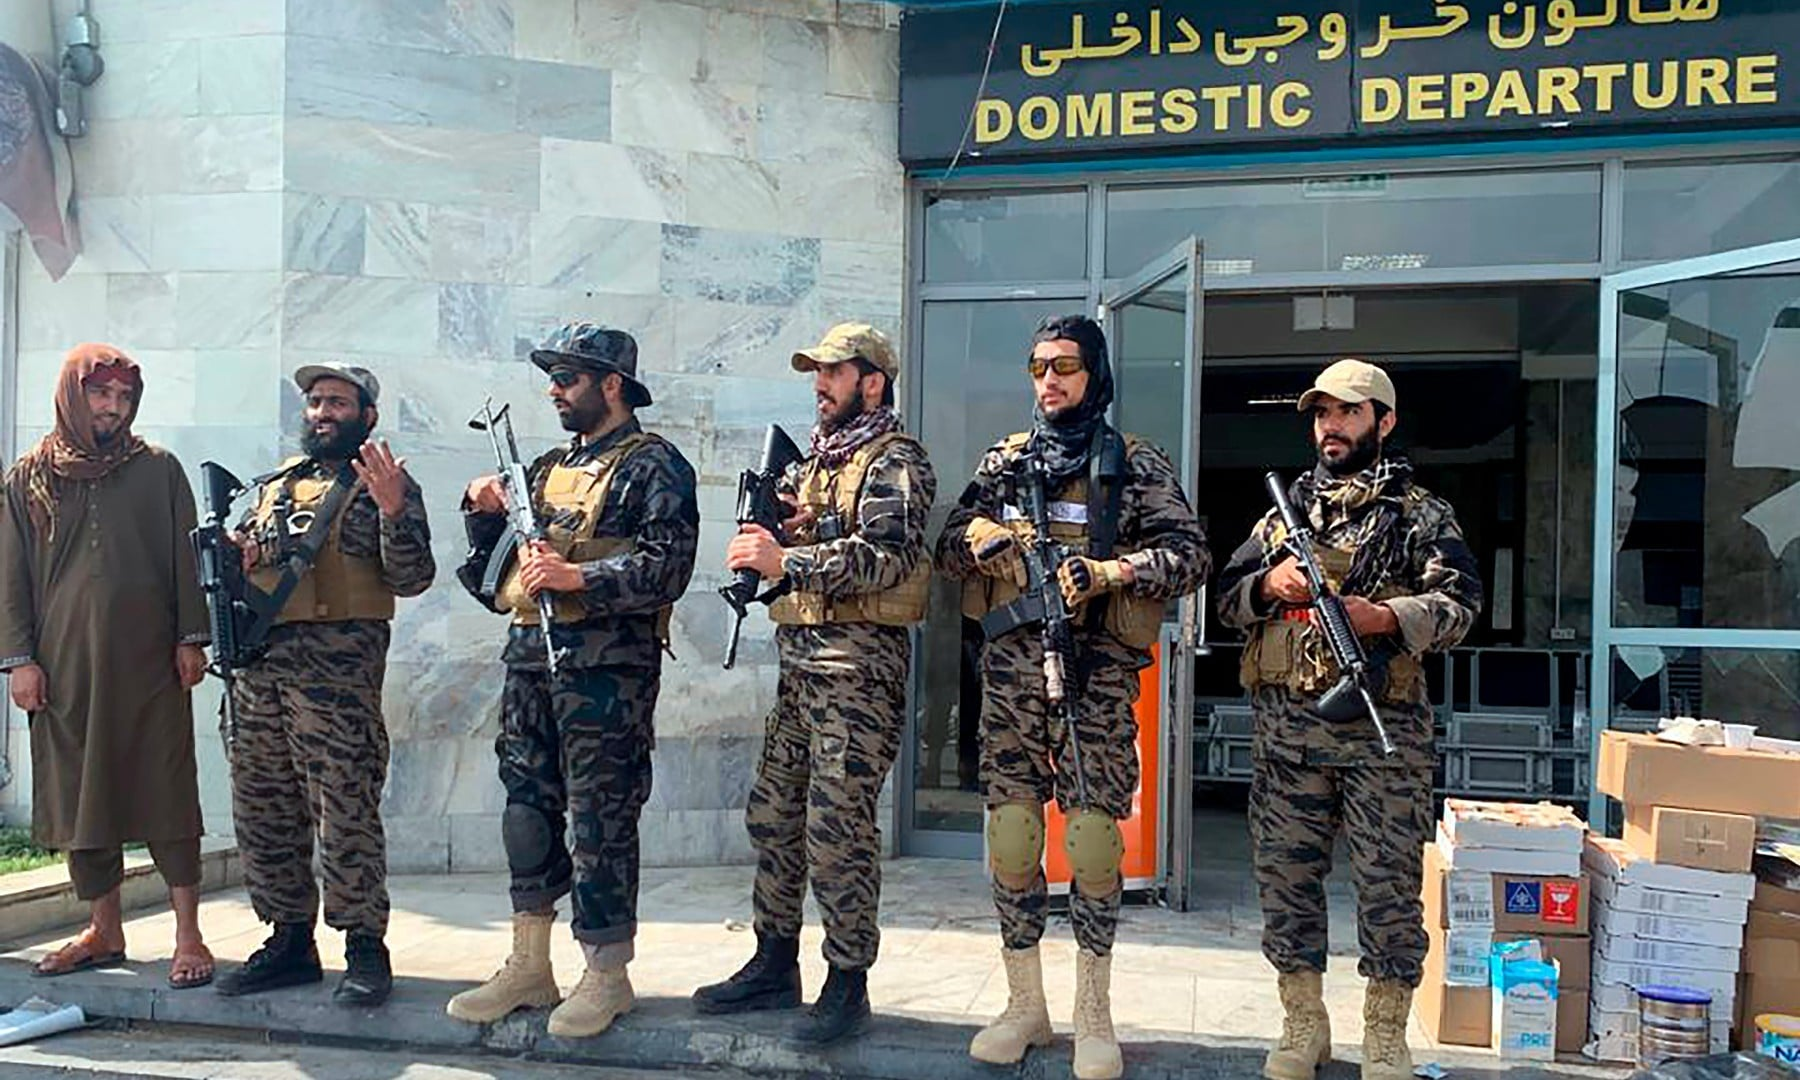 Taliban fighters stand guard inside the Hamid Karzai International Airport after the US withdrawal in Kabul on August 31. — AFP